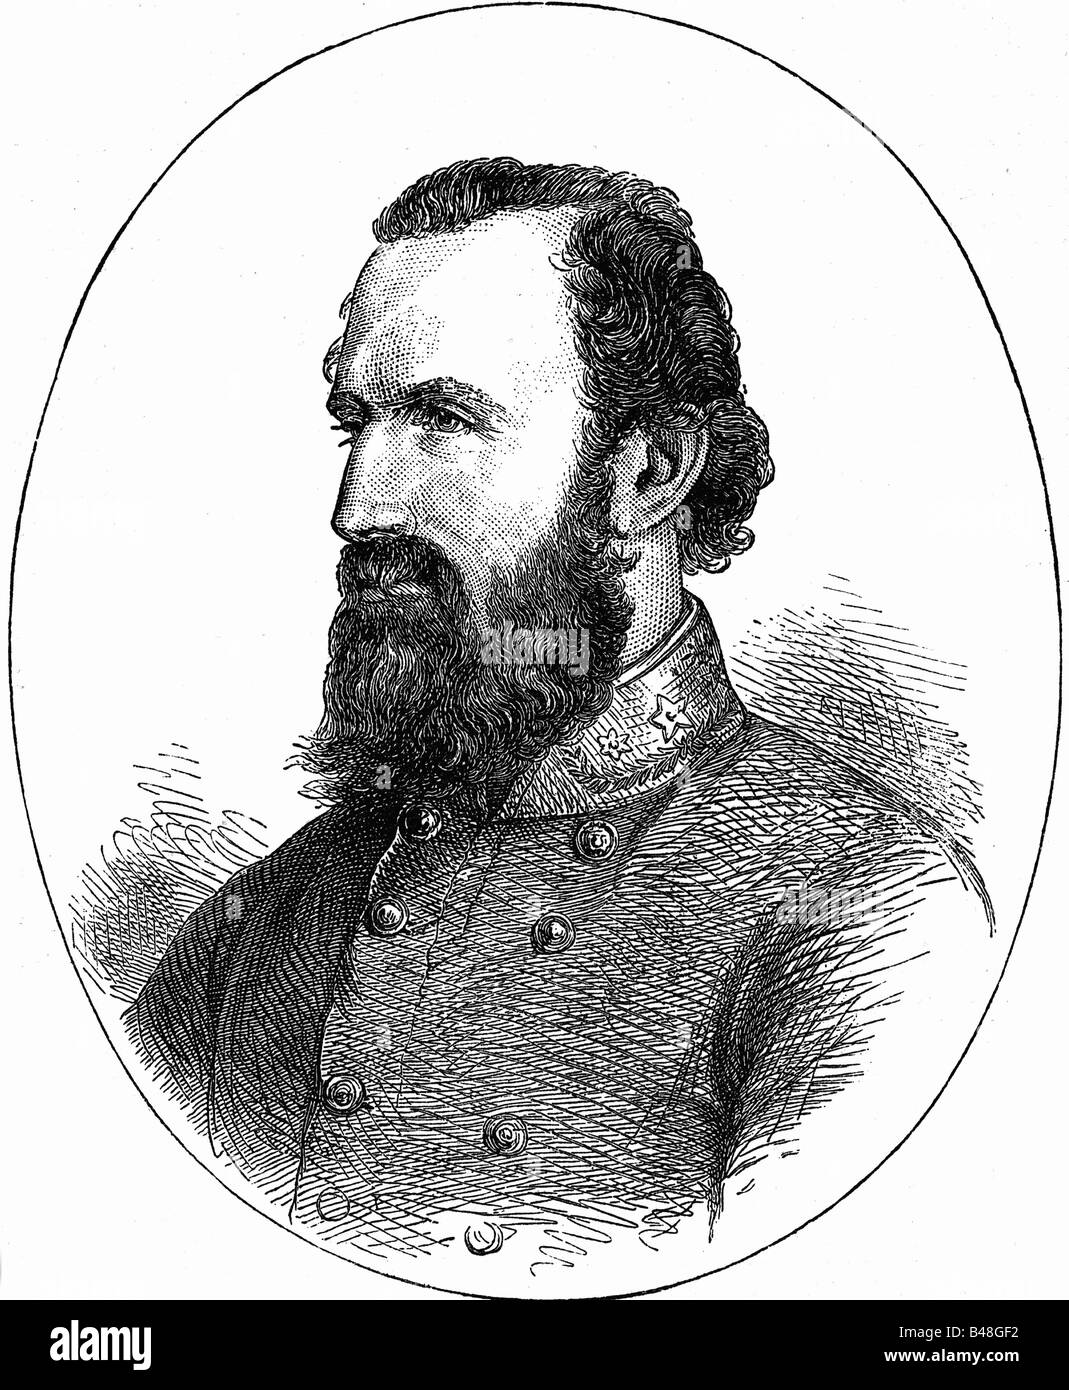 Jackson, Thomas 'Stonewall', 21.1.1824 - 10.5.1863, American General, portrait, wood engraving, 19th century, - Stock Image